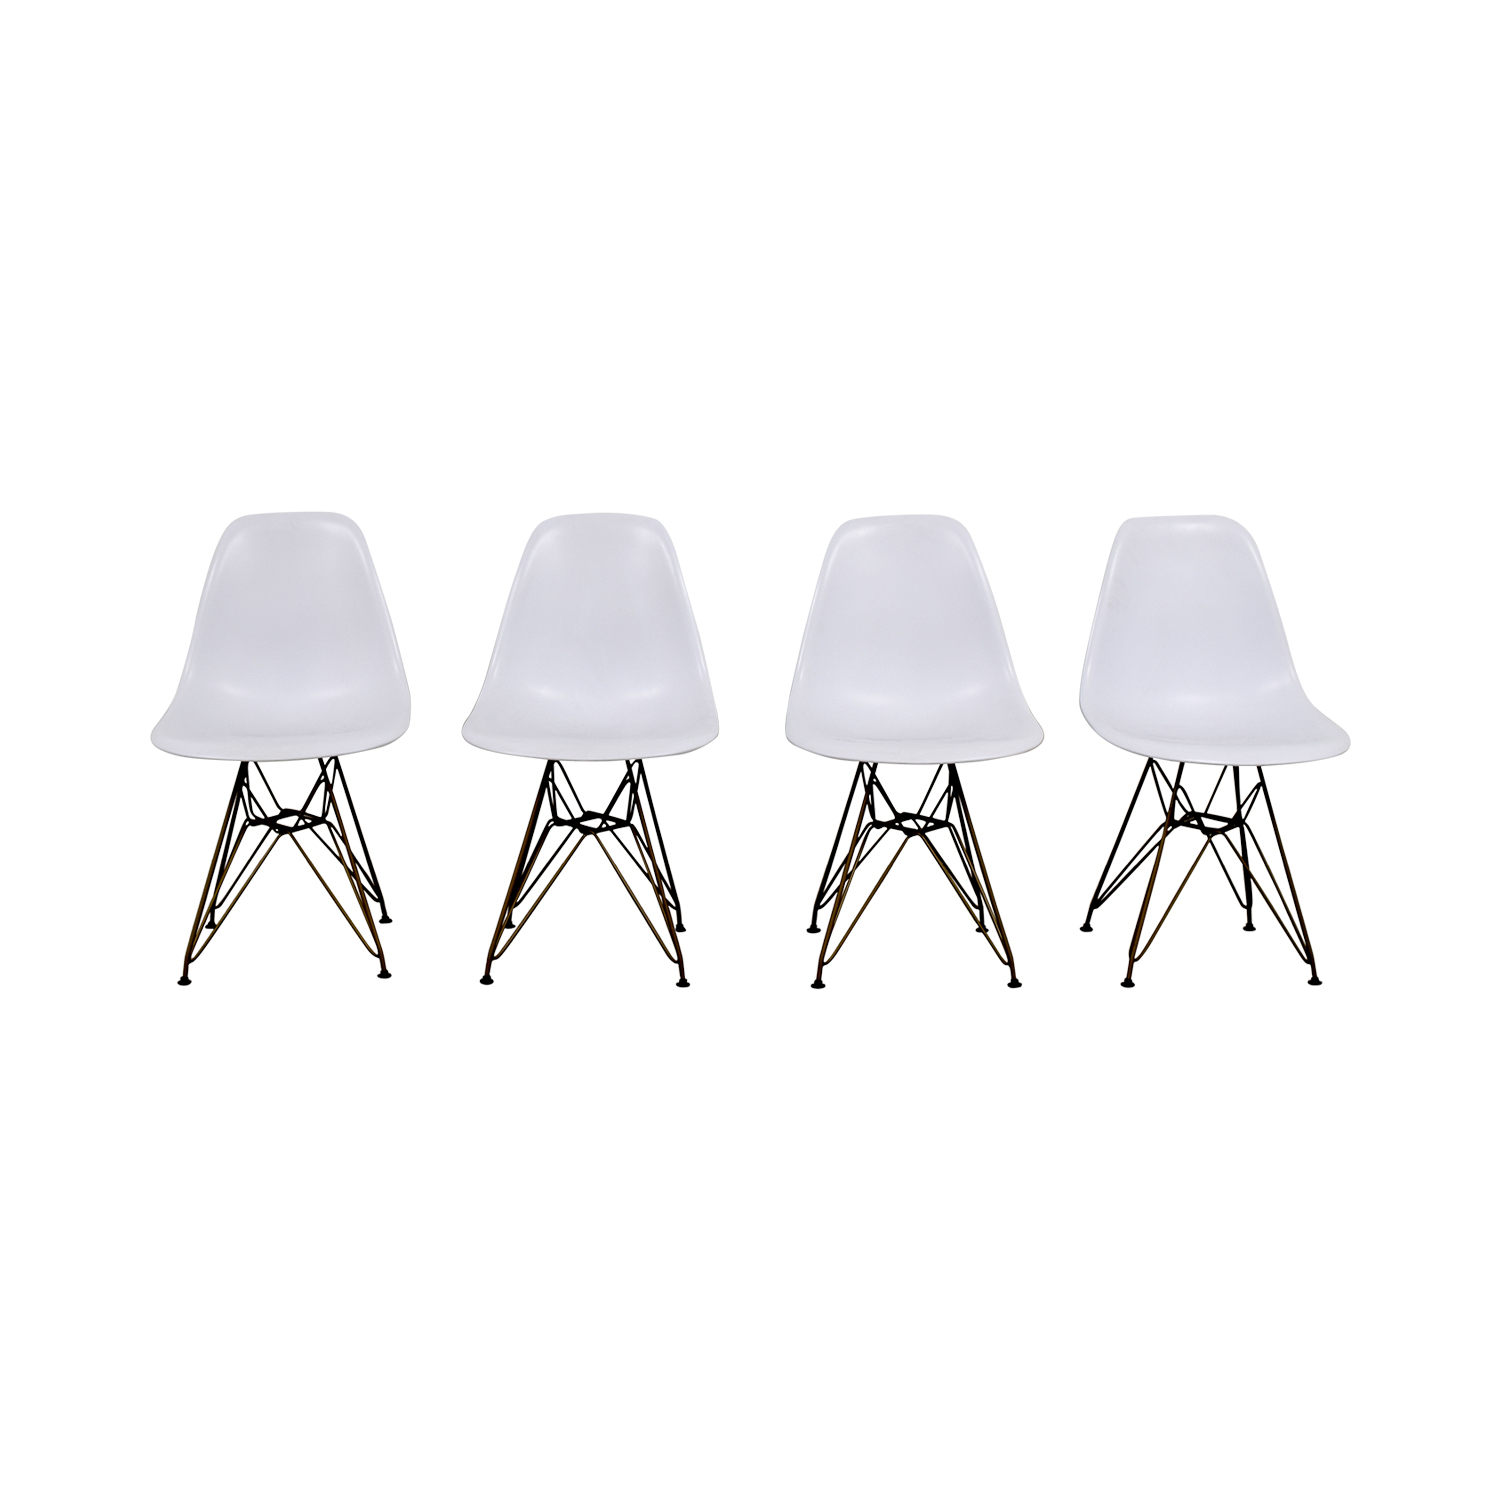 Junia Junia White Side Chairs for sale